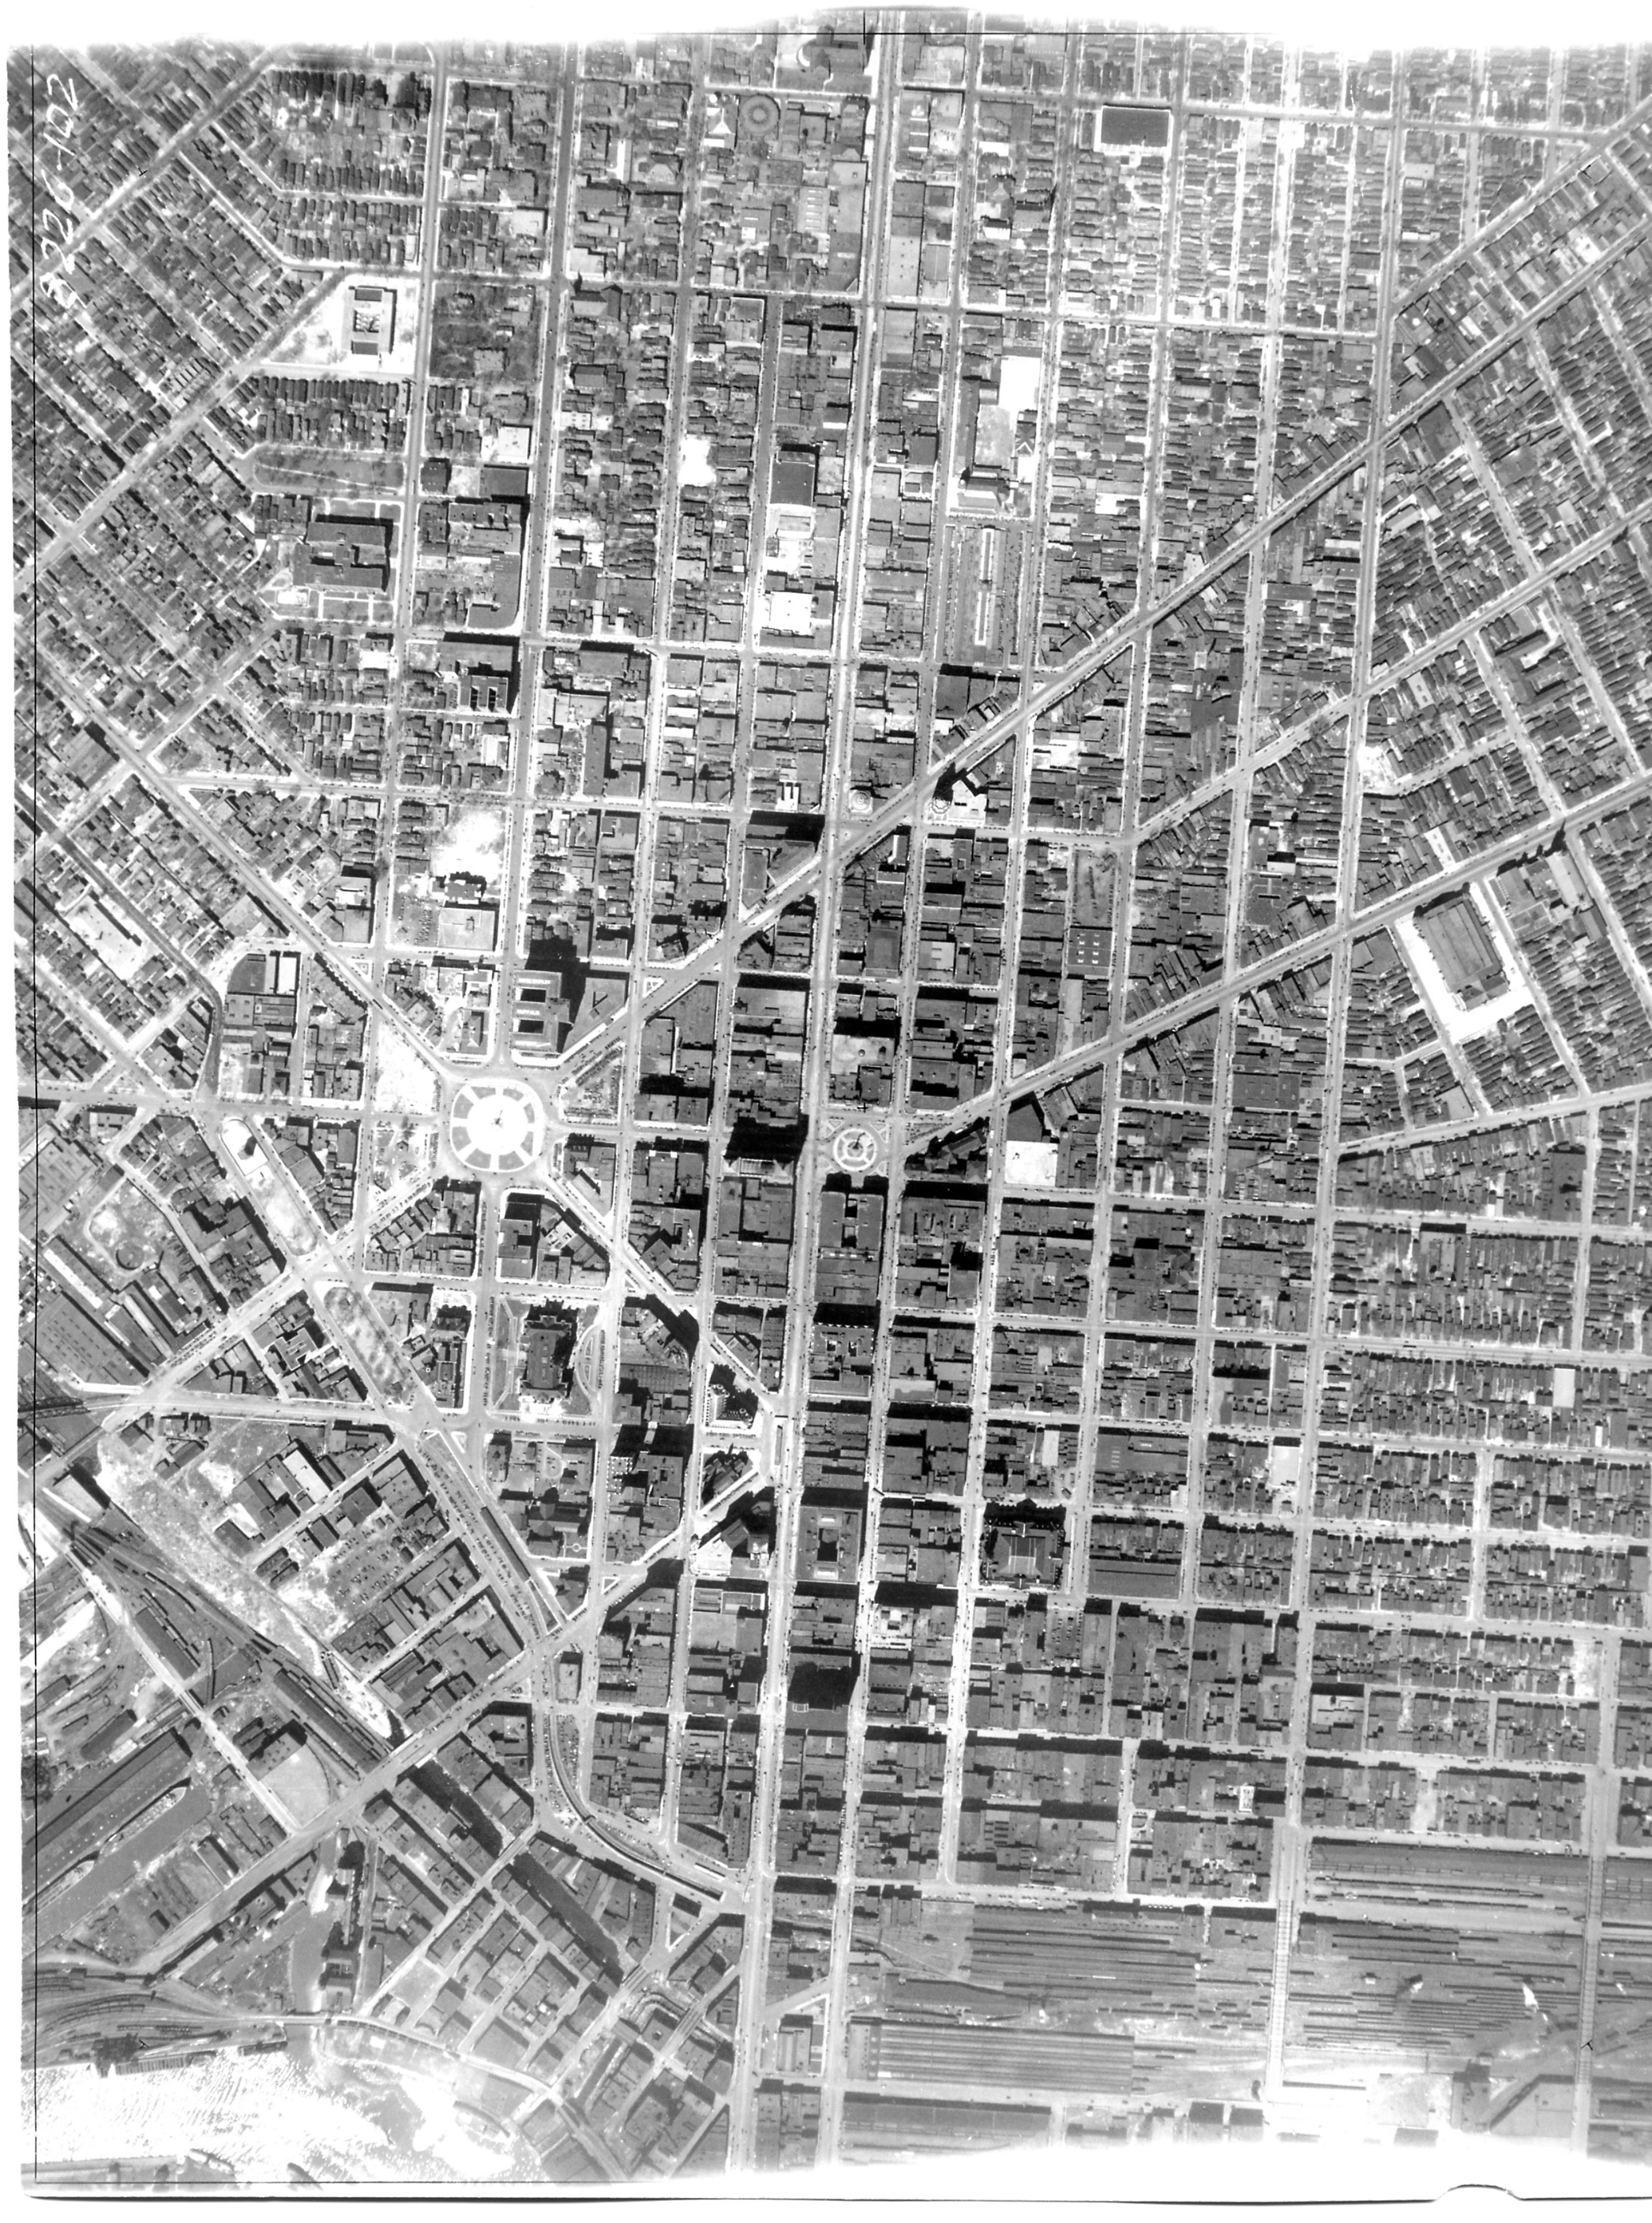 8226 1928 Aerial Photographs of Buffalo and WNY Research